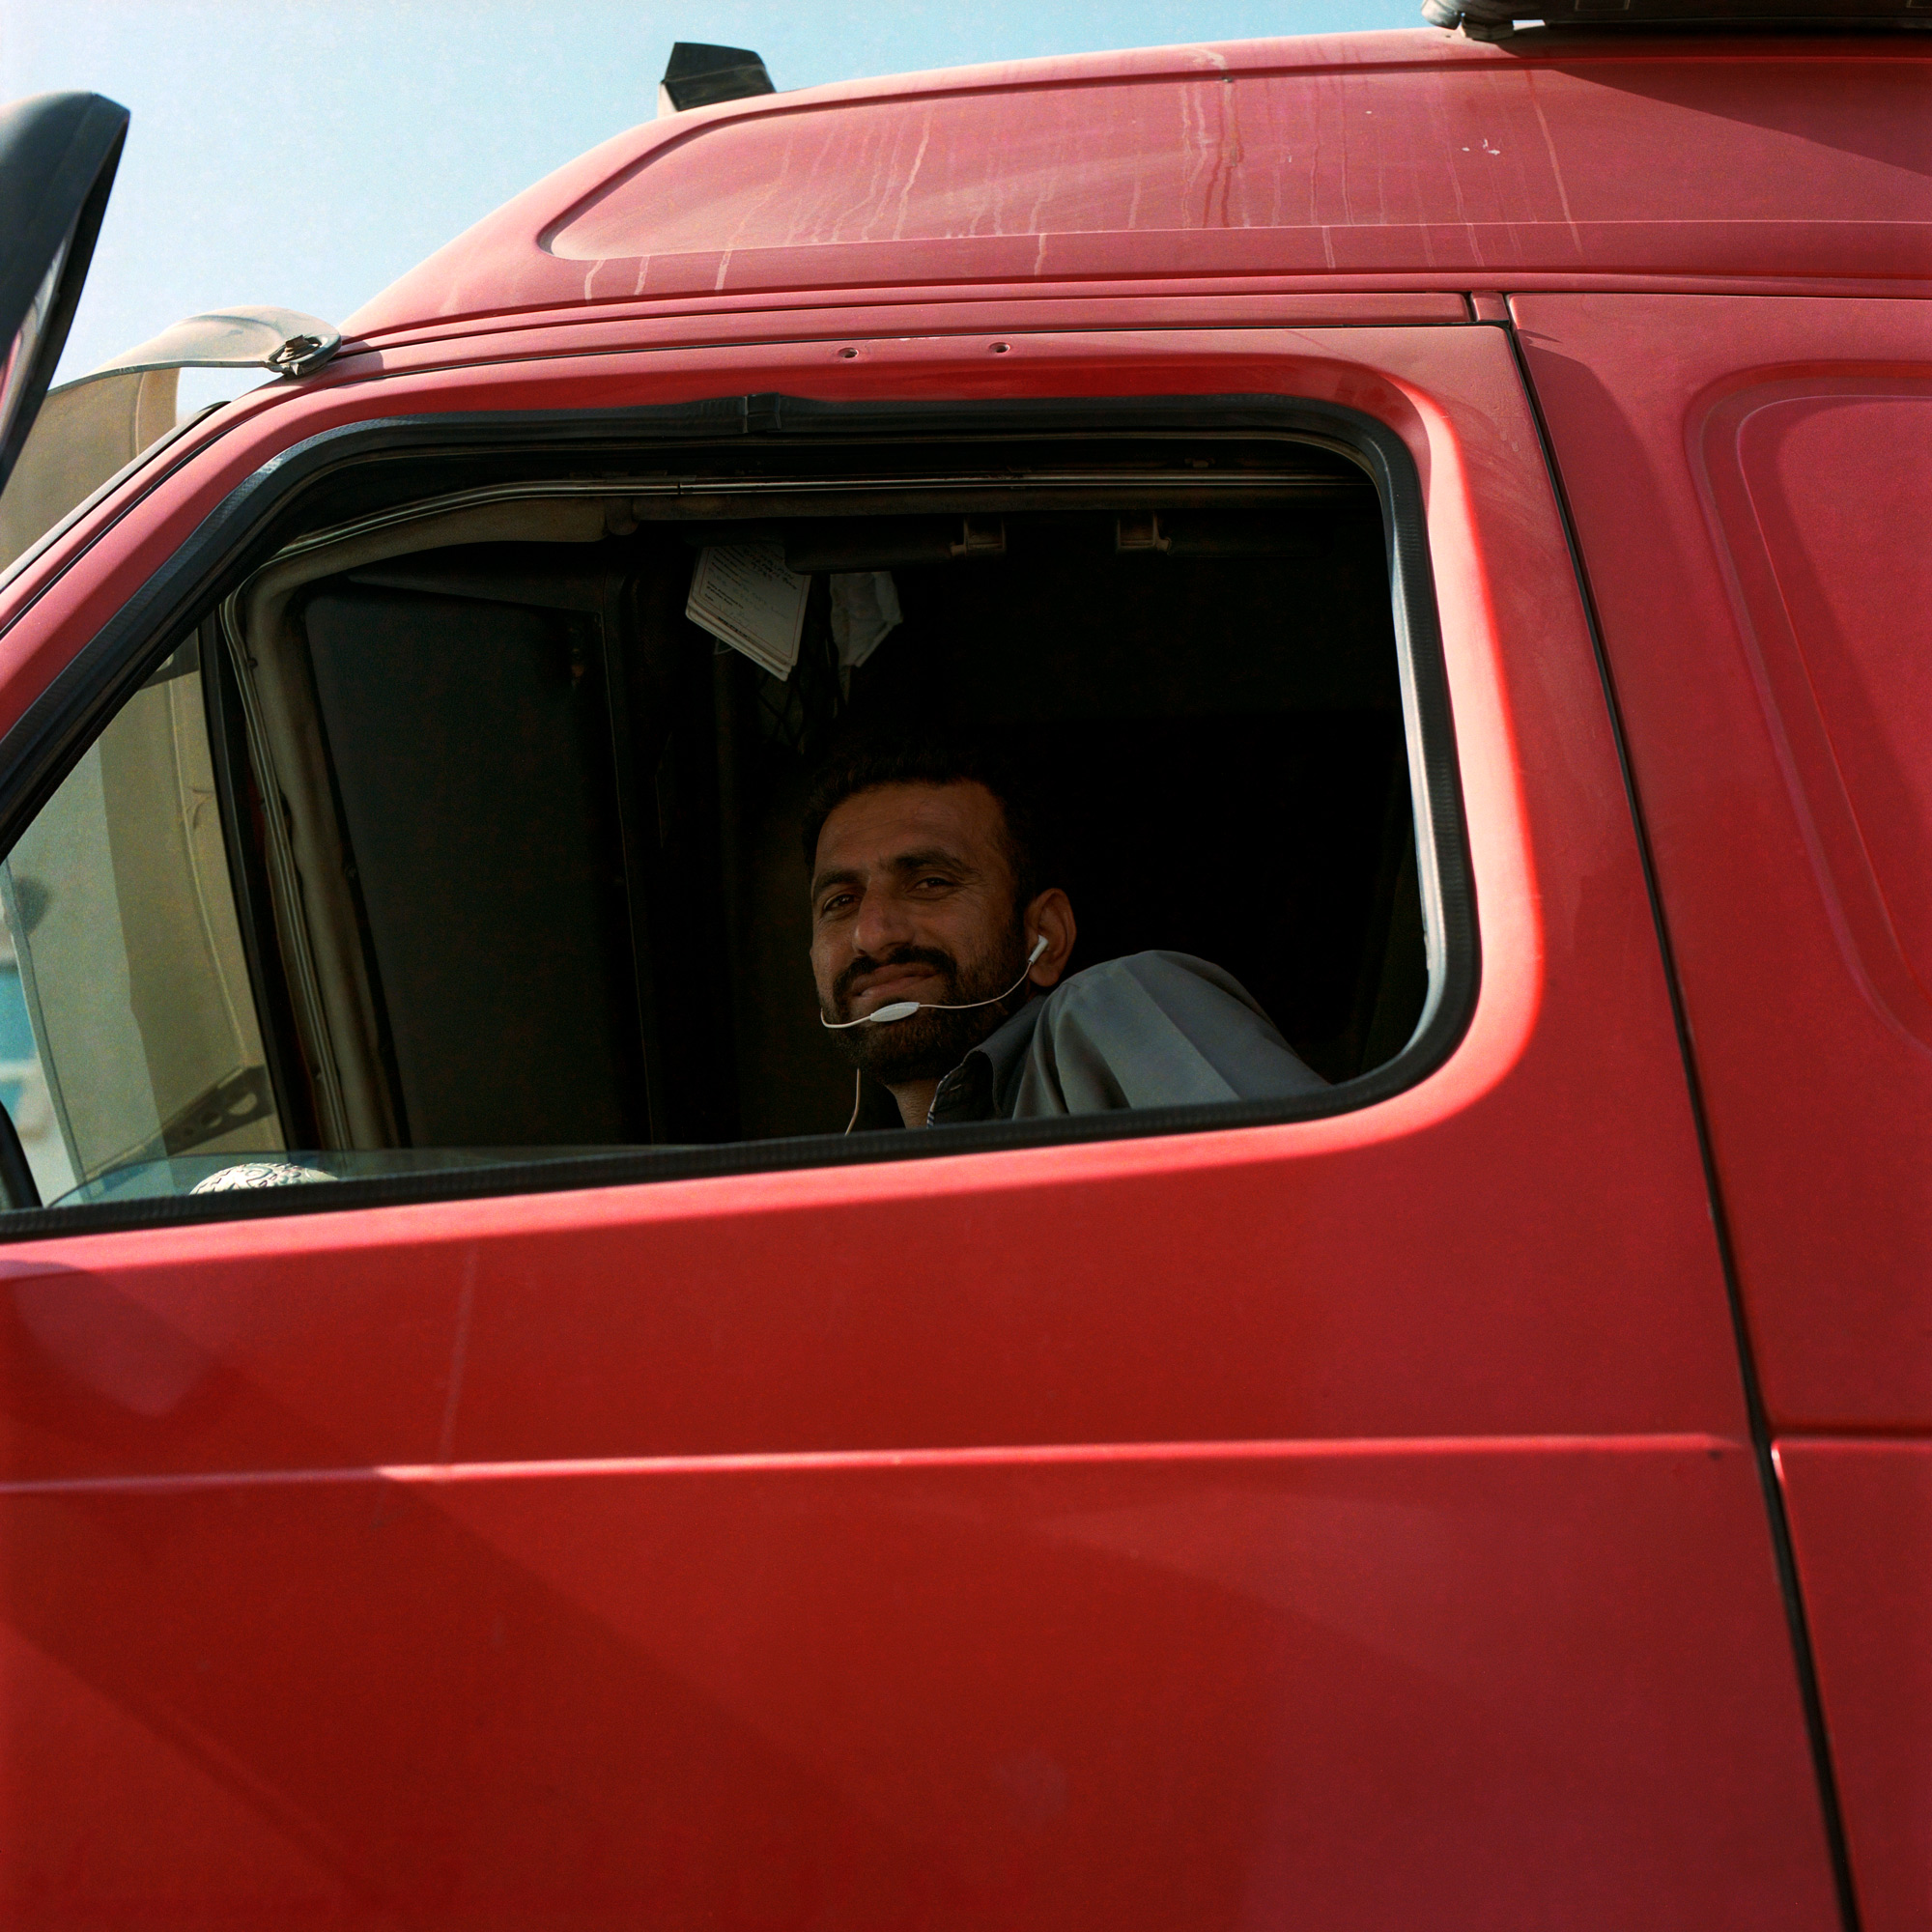 Truck driver at the wheel. construction workers on worksite, Dubai Labourers.